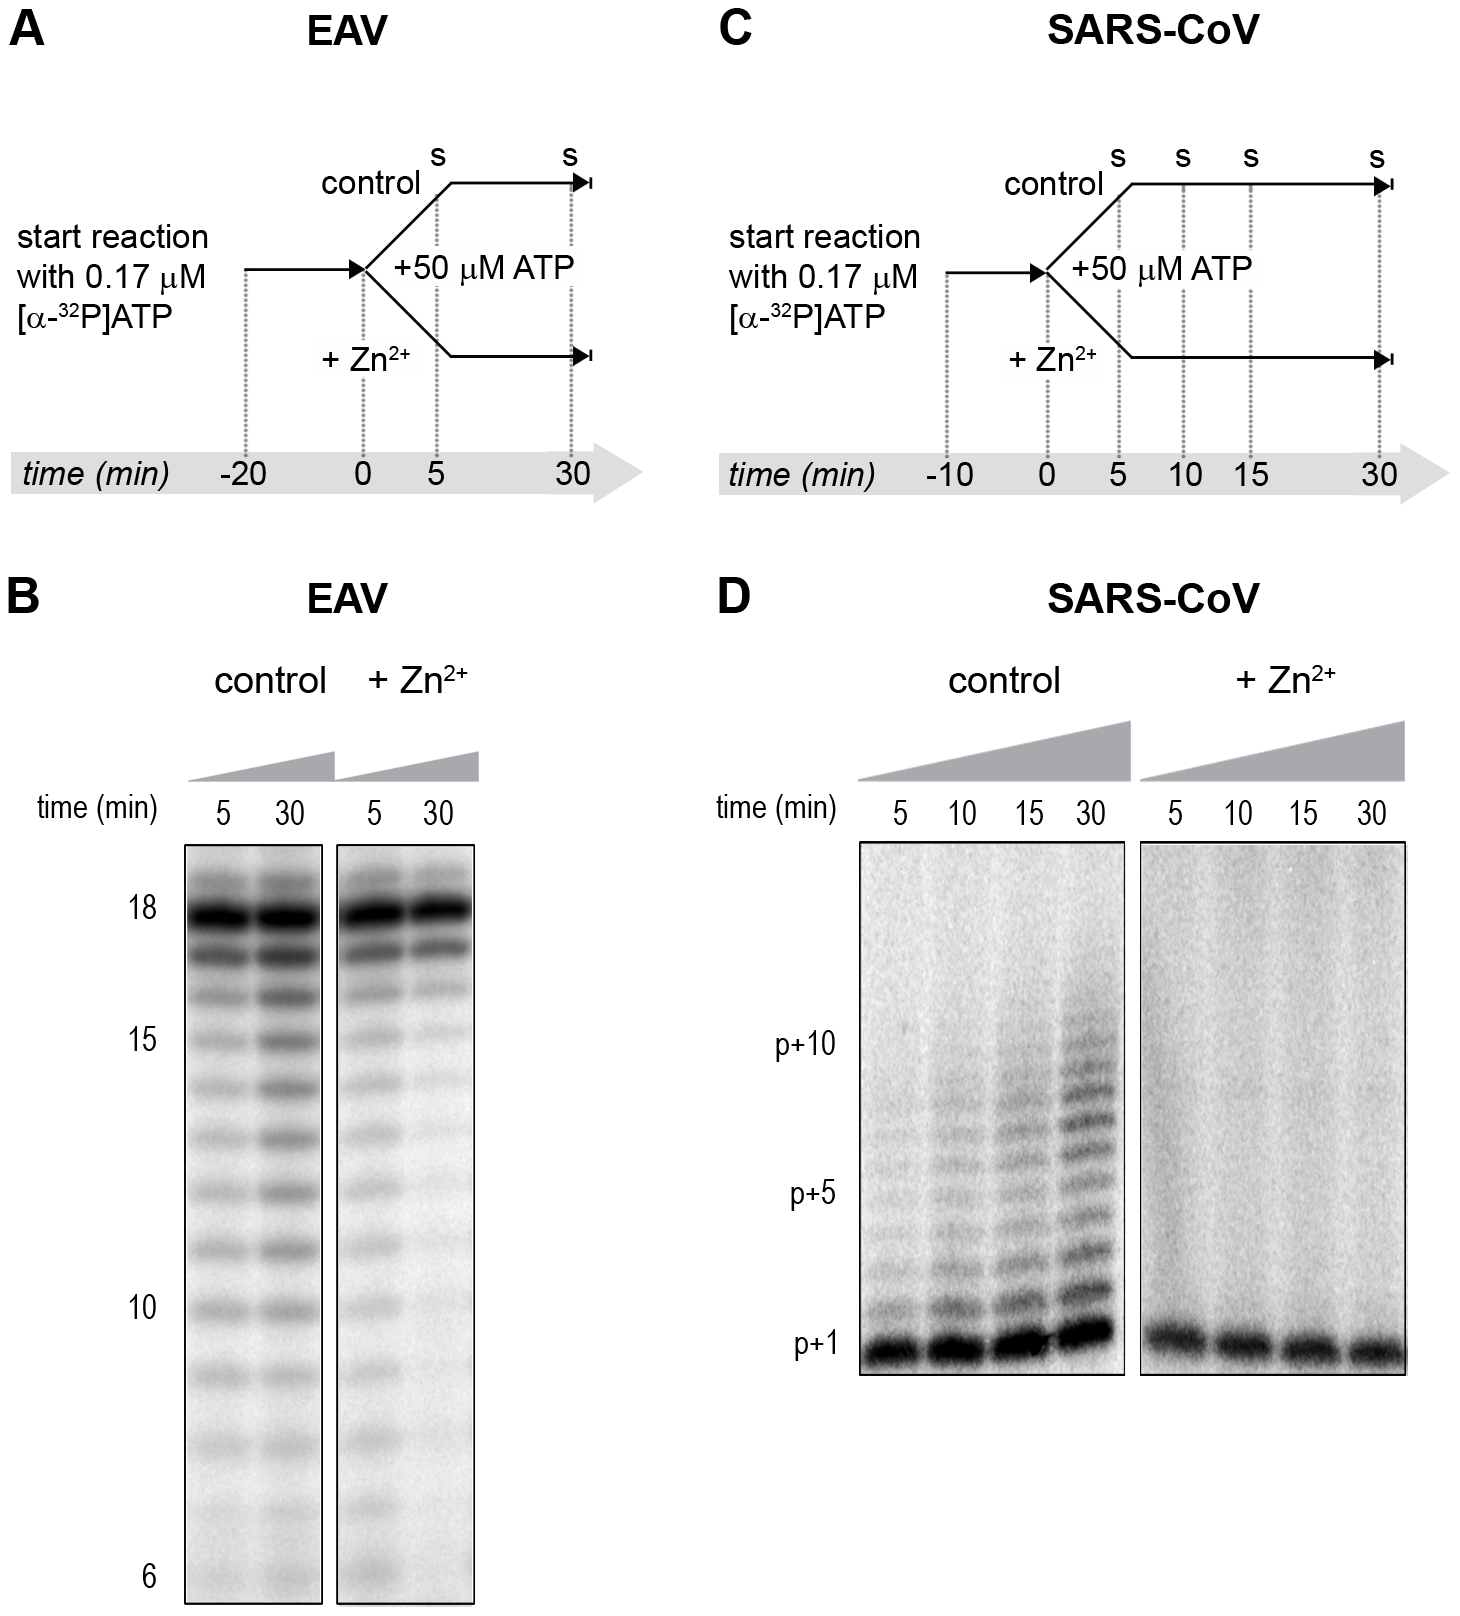 The effect of Zn<sup>2+</sup> on initiation and elongation activity of purified EAV and SARS-CoV RdRps.